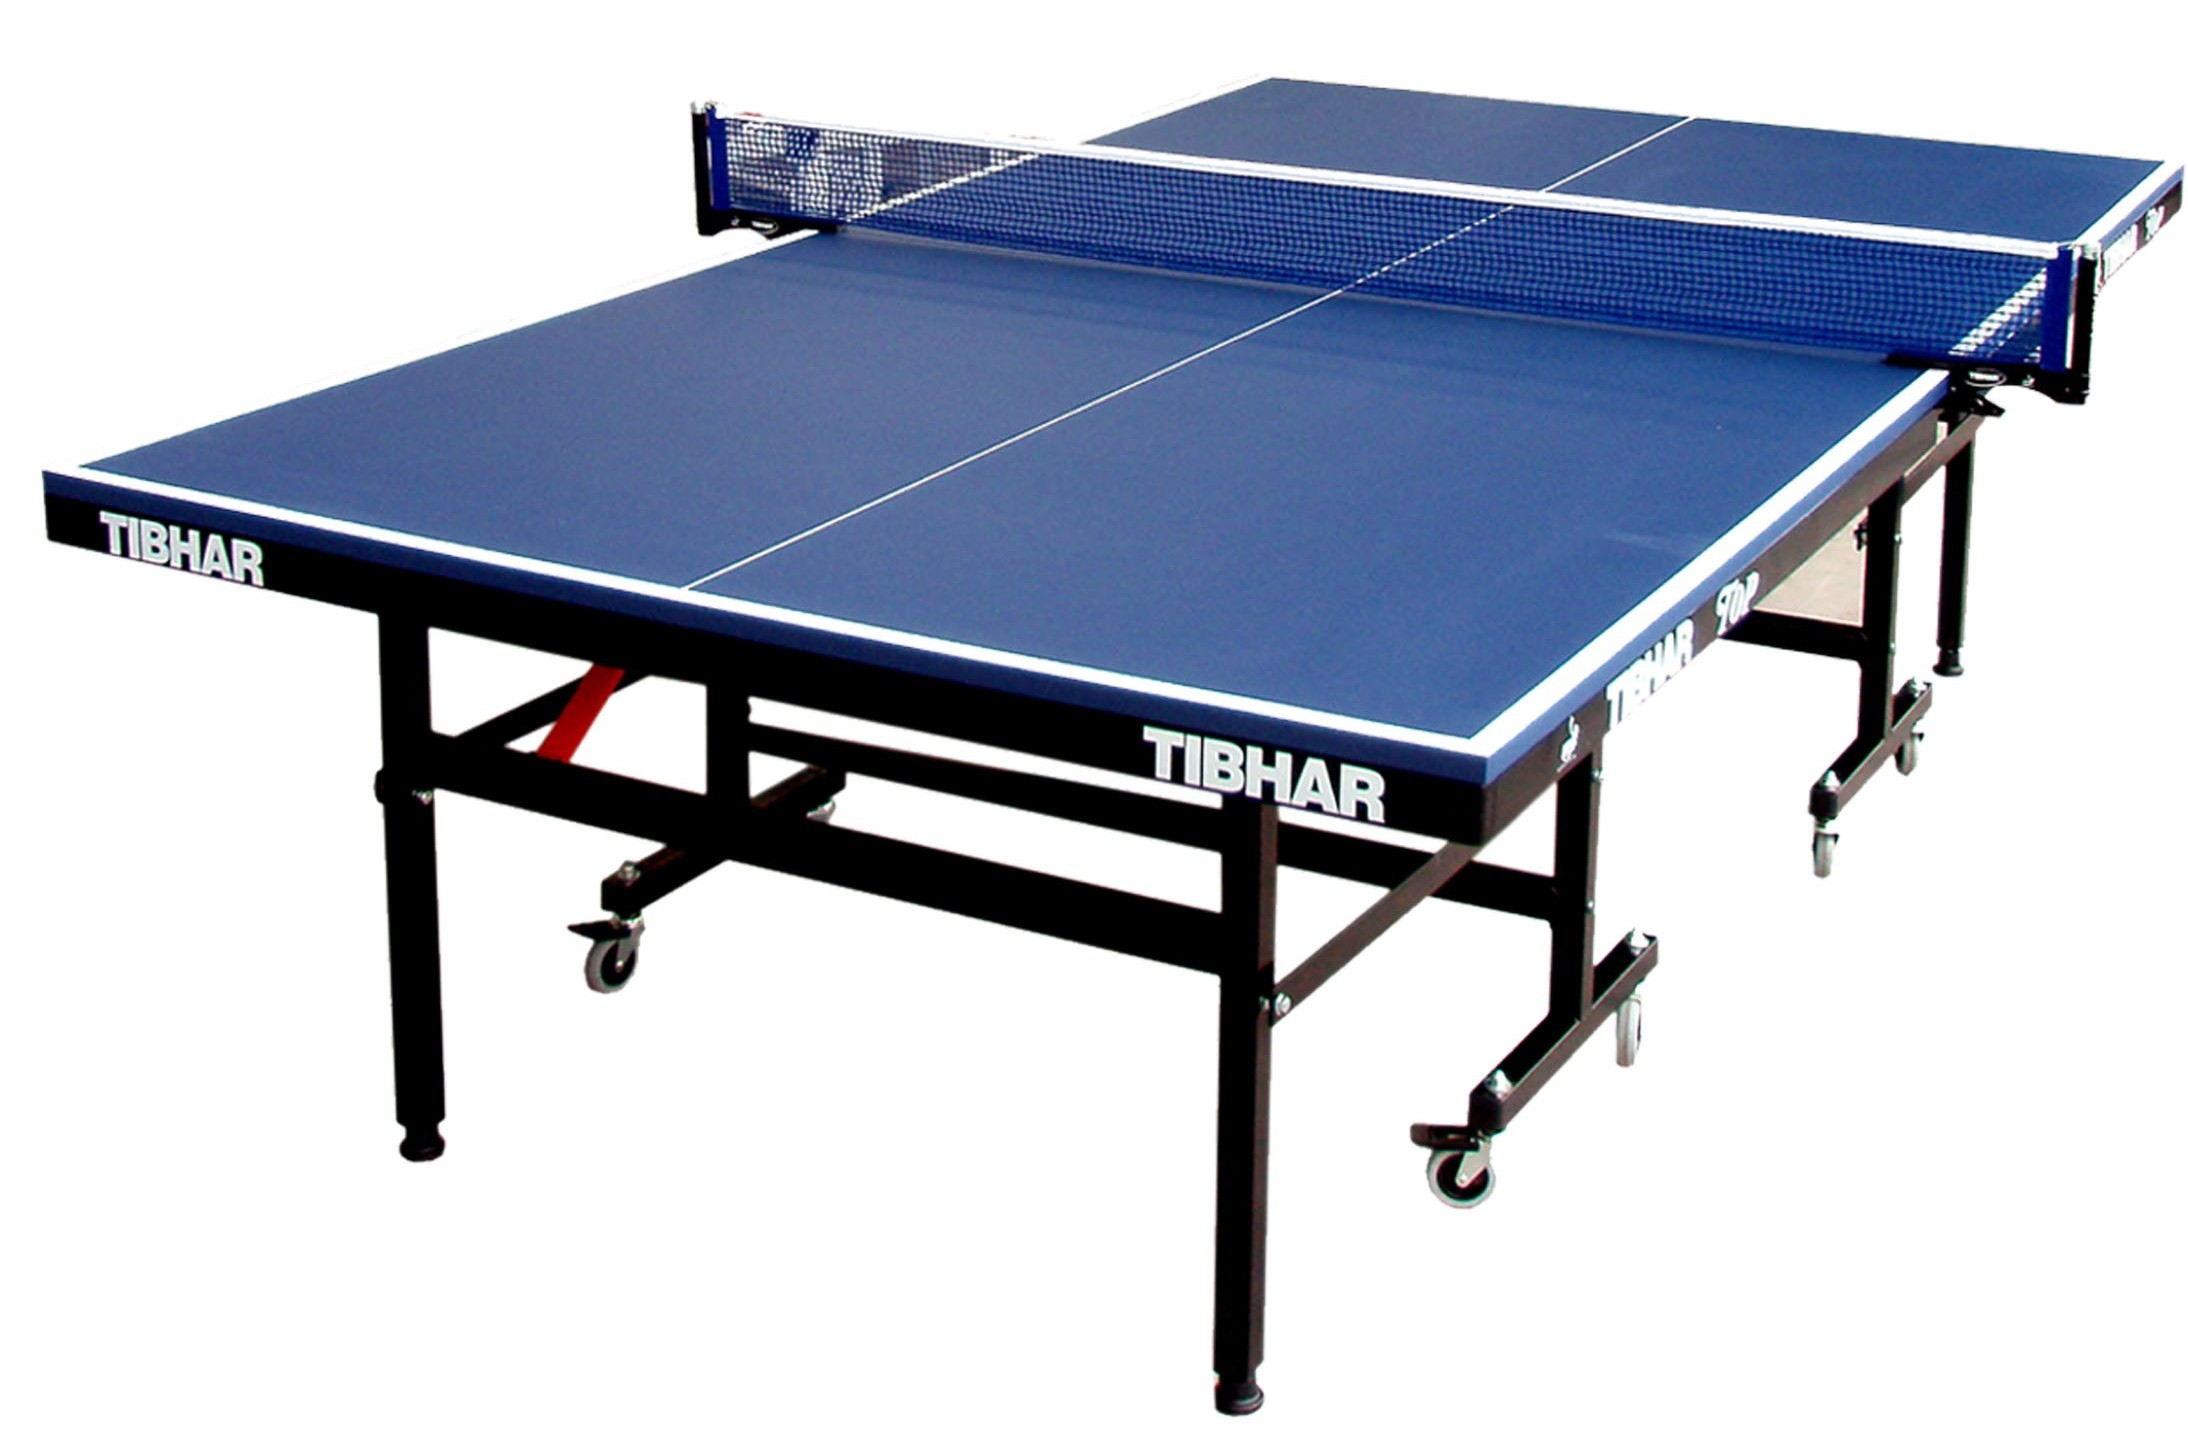 ping pong table for rent ping pong table tennis rental louisville ky. Black Bedroom Furniture Sets. Home Design Ideas